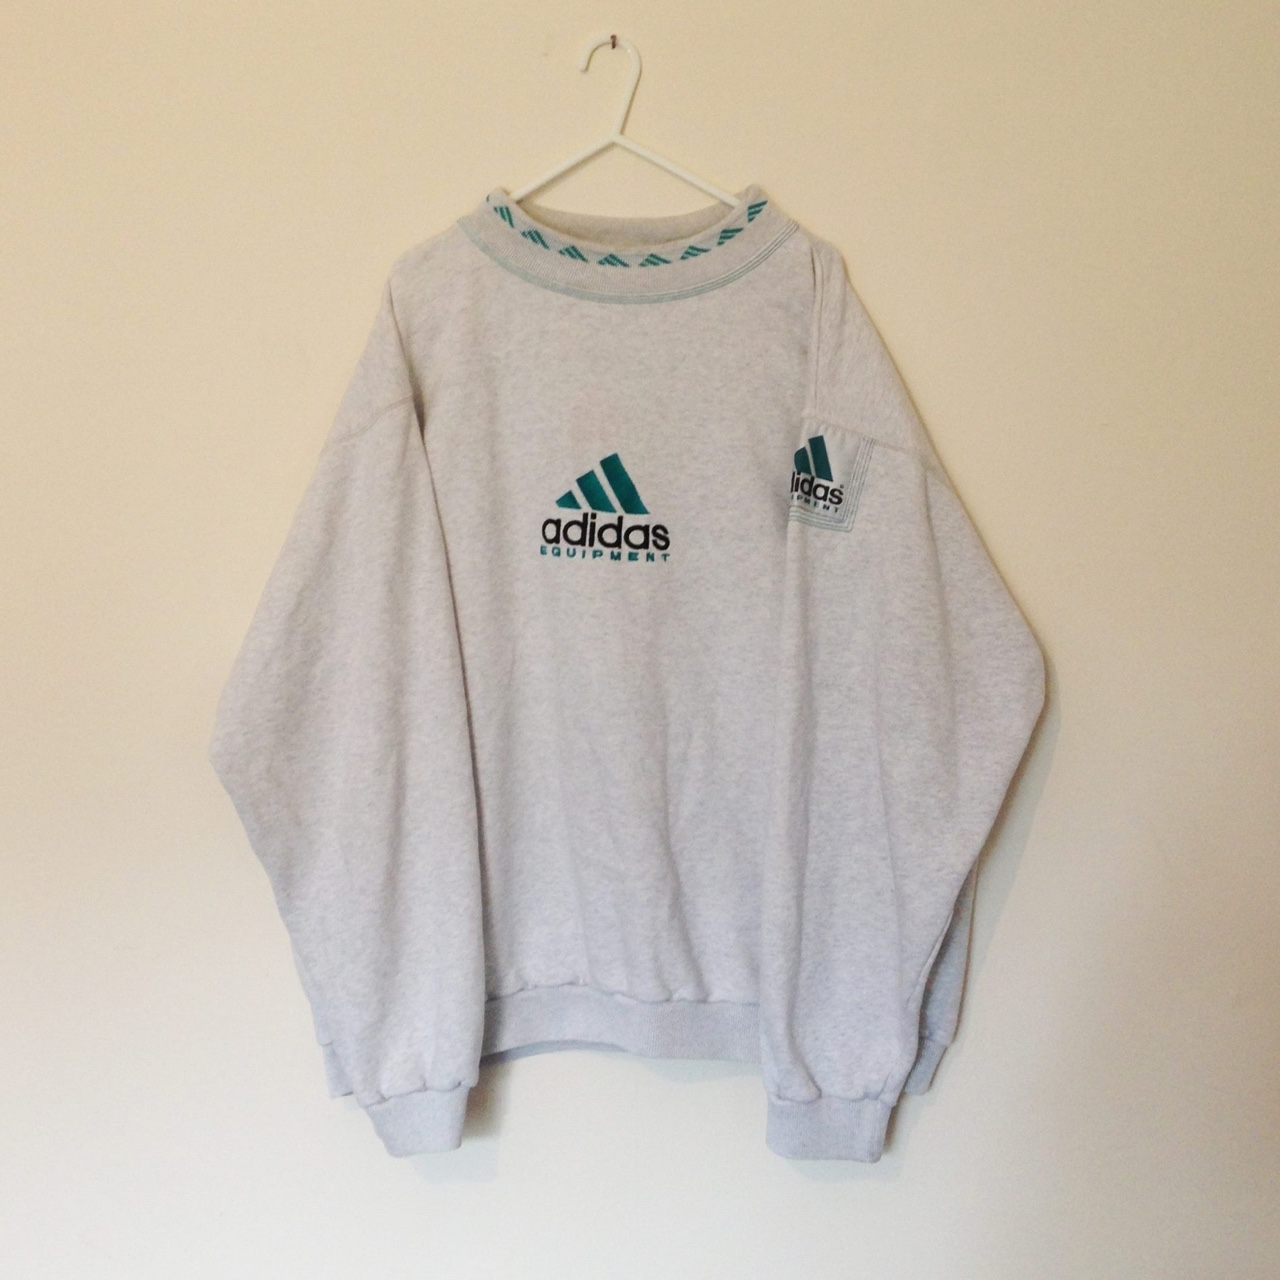 adidas Sweaters | Vintage Equipment | Poshmark